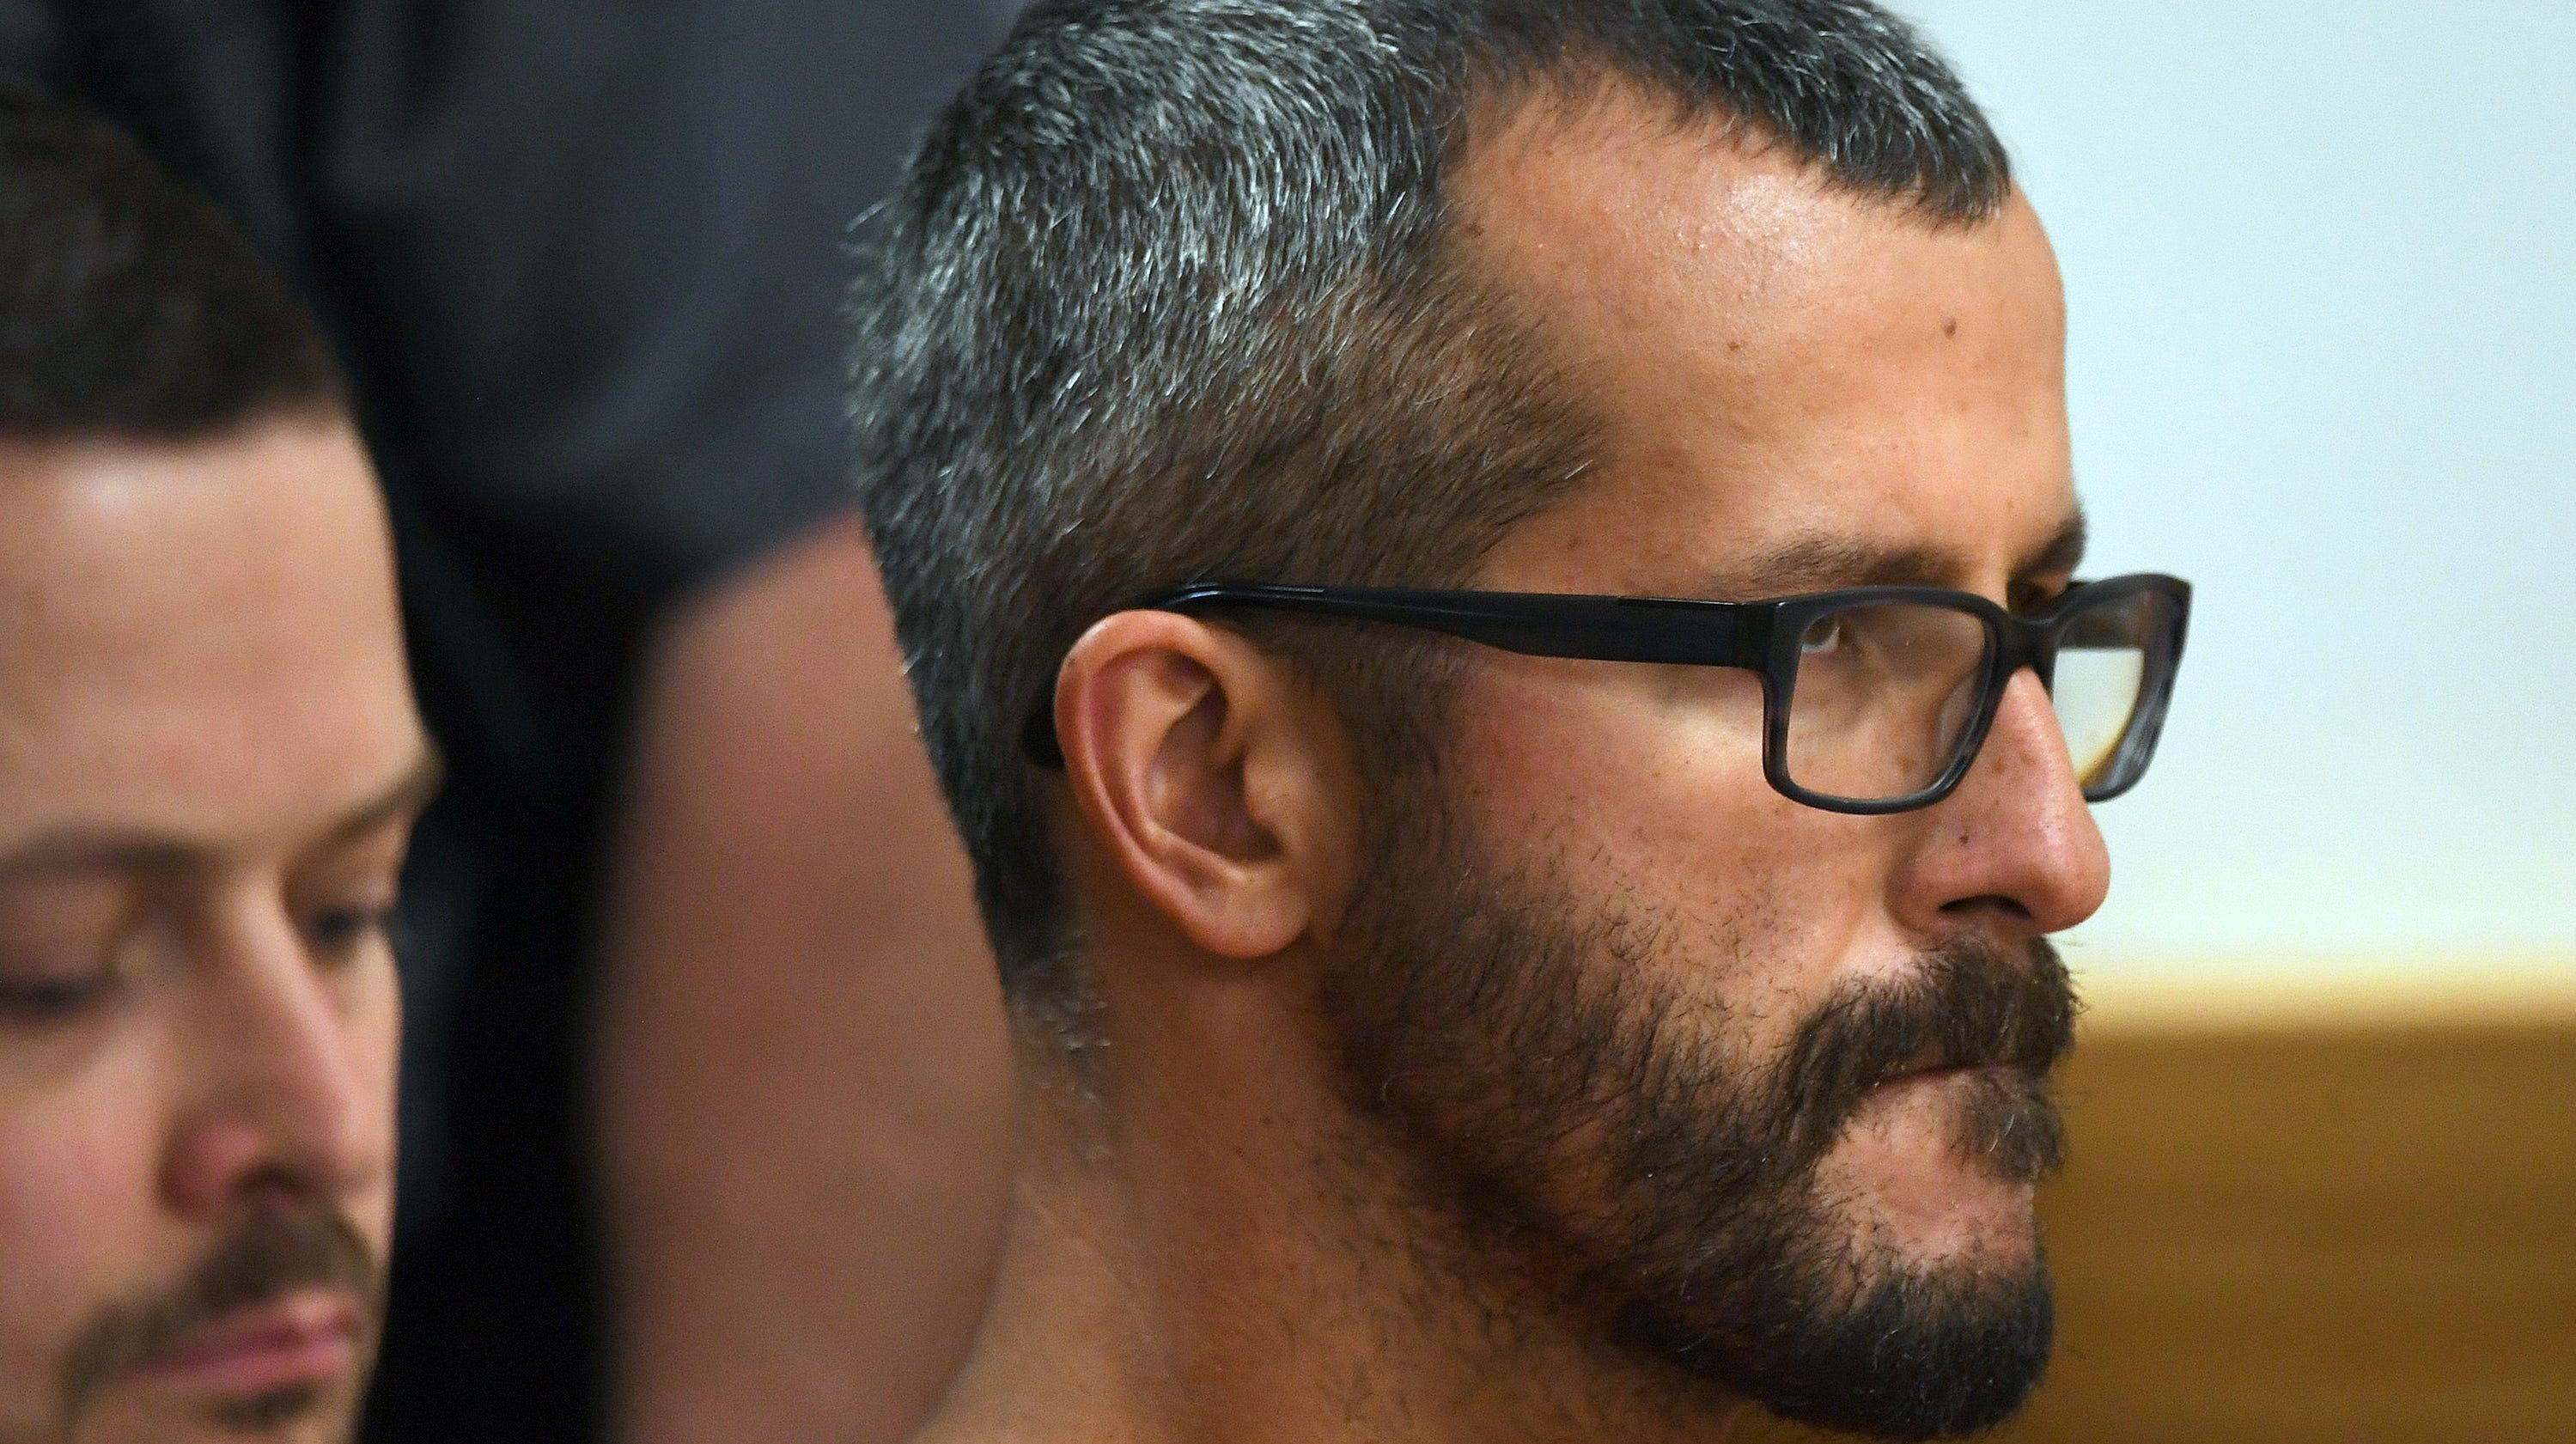 Christopher Watts has his first court appearance Aug. 21, 2018, in Roggen, Colorado. He pleaded guilty Nov. 6, 2018, to nine counts, including several counts of first-degree murder of his wife and two young daughters.